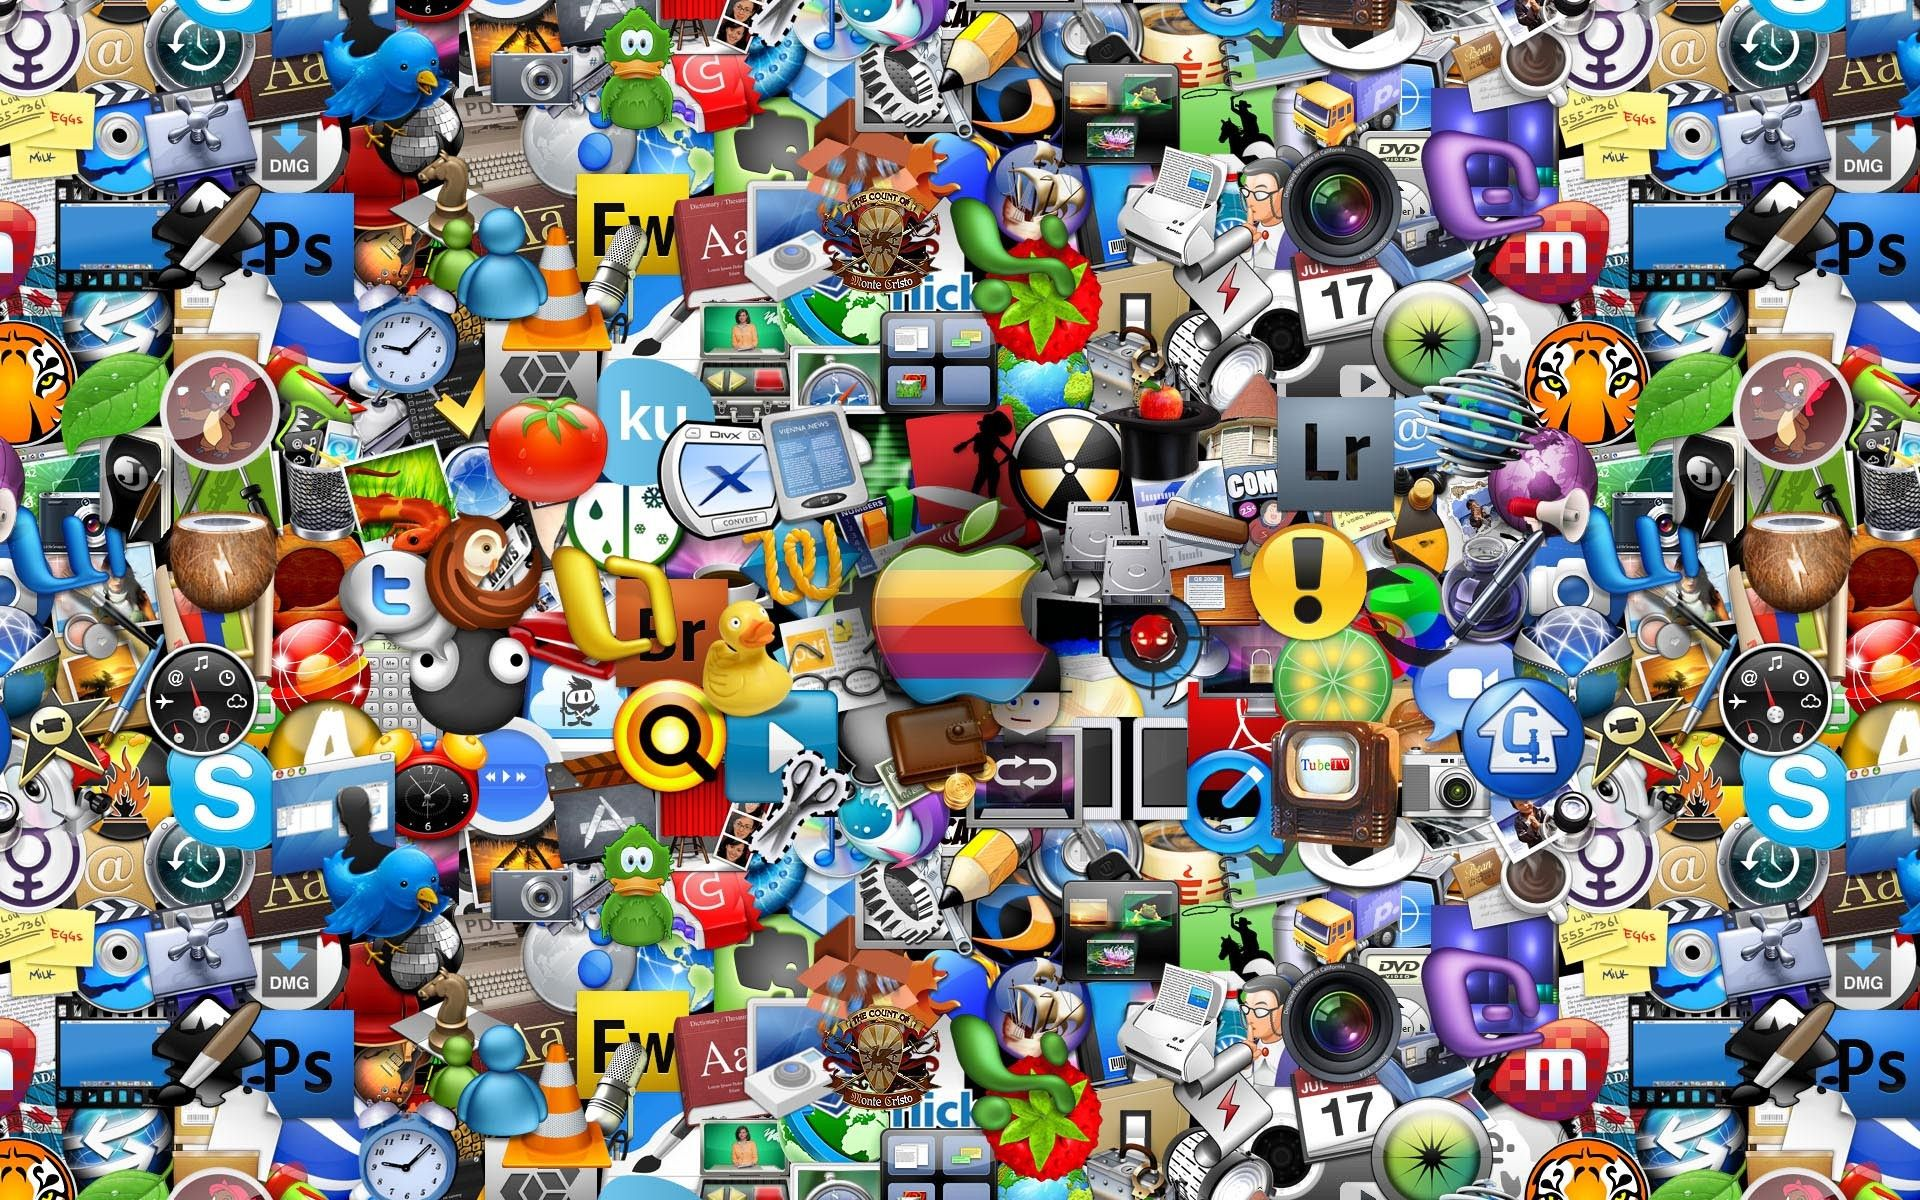 Apps Vs Web Tools Key Factoids To Know About Both Options